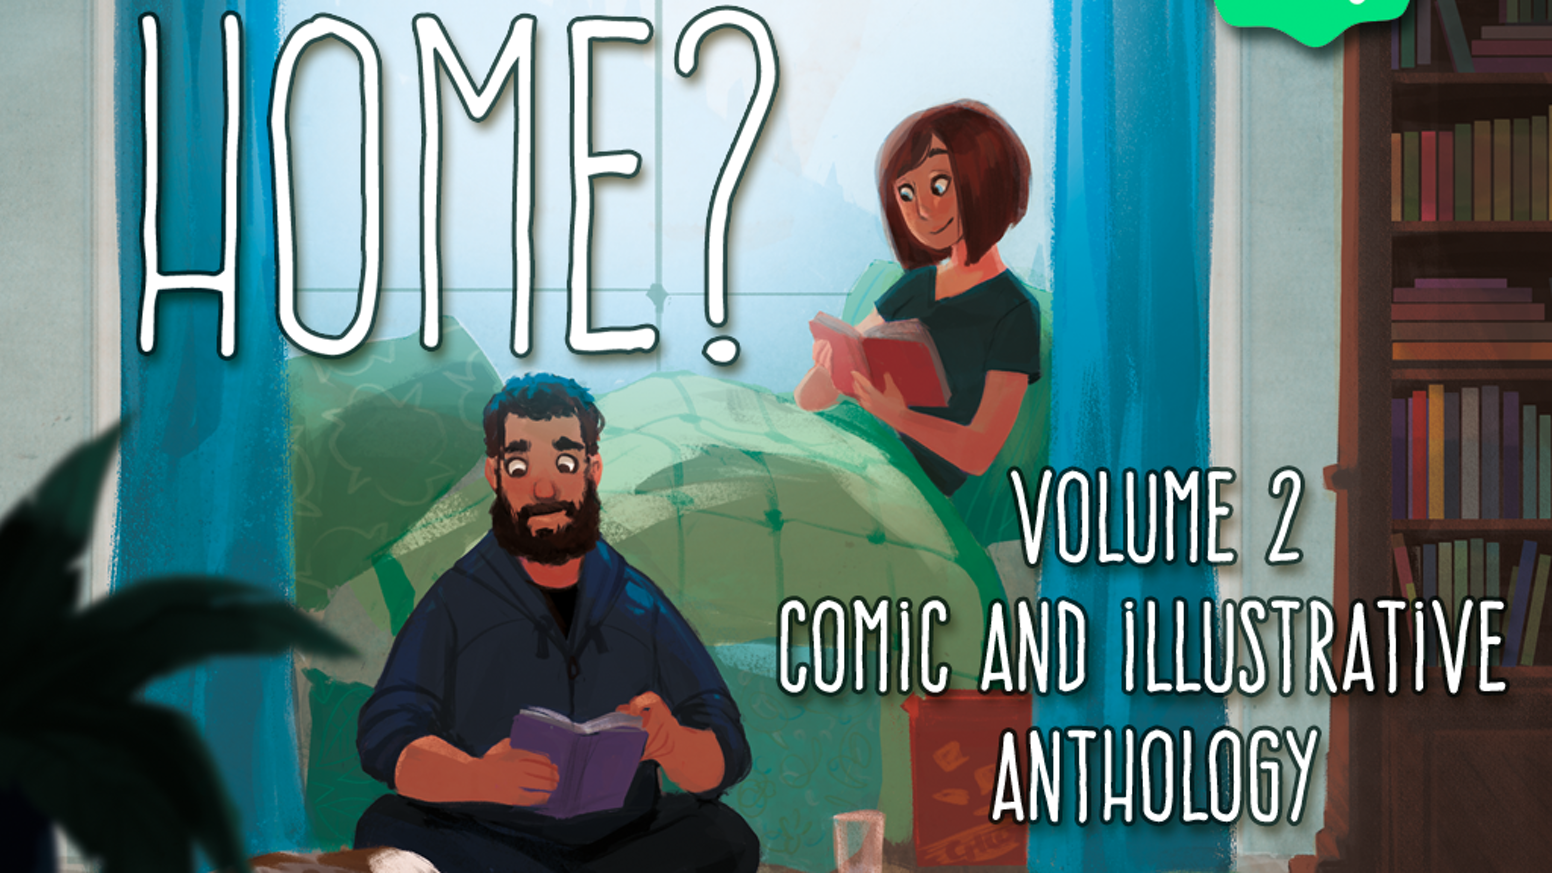 The theme 'Where is home?' is explored by 35 artists in the second volume of this printed anthology through comics and illustrations.